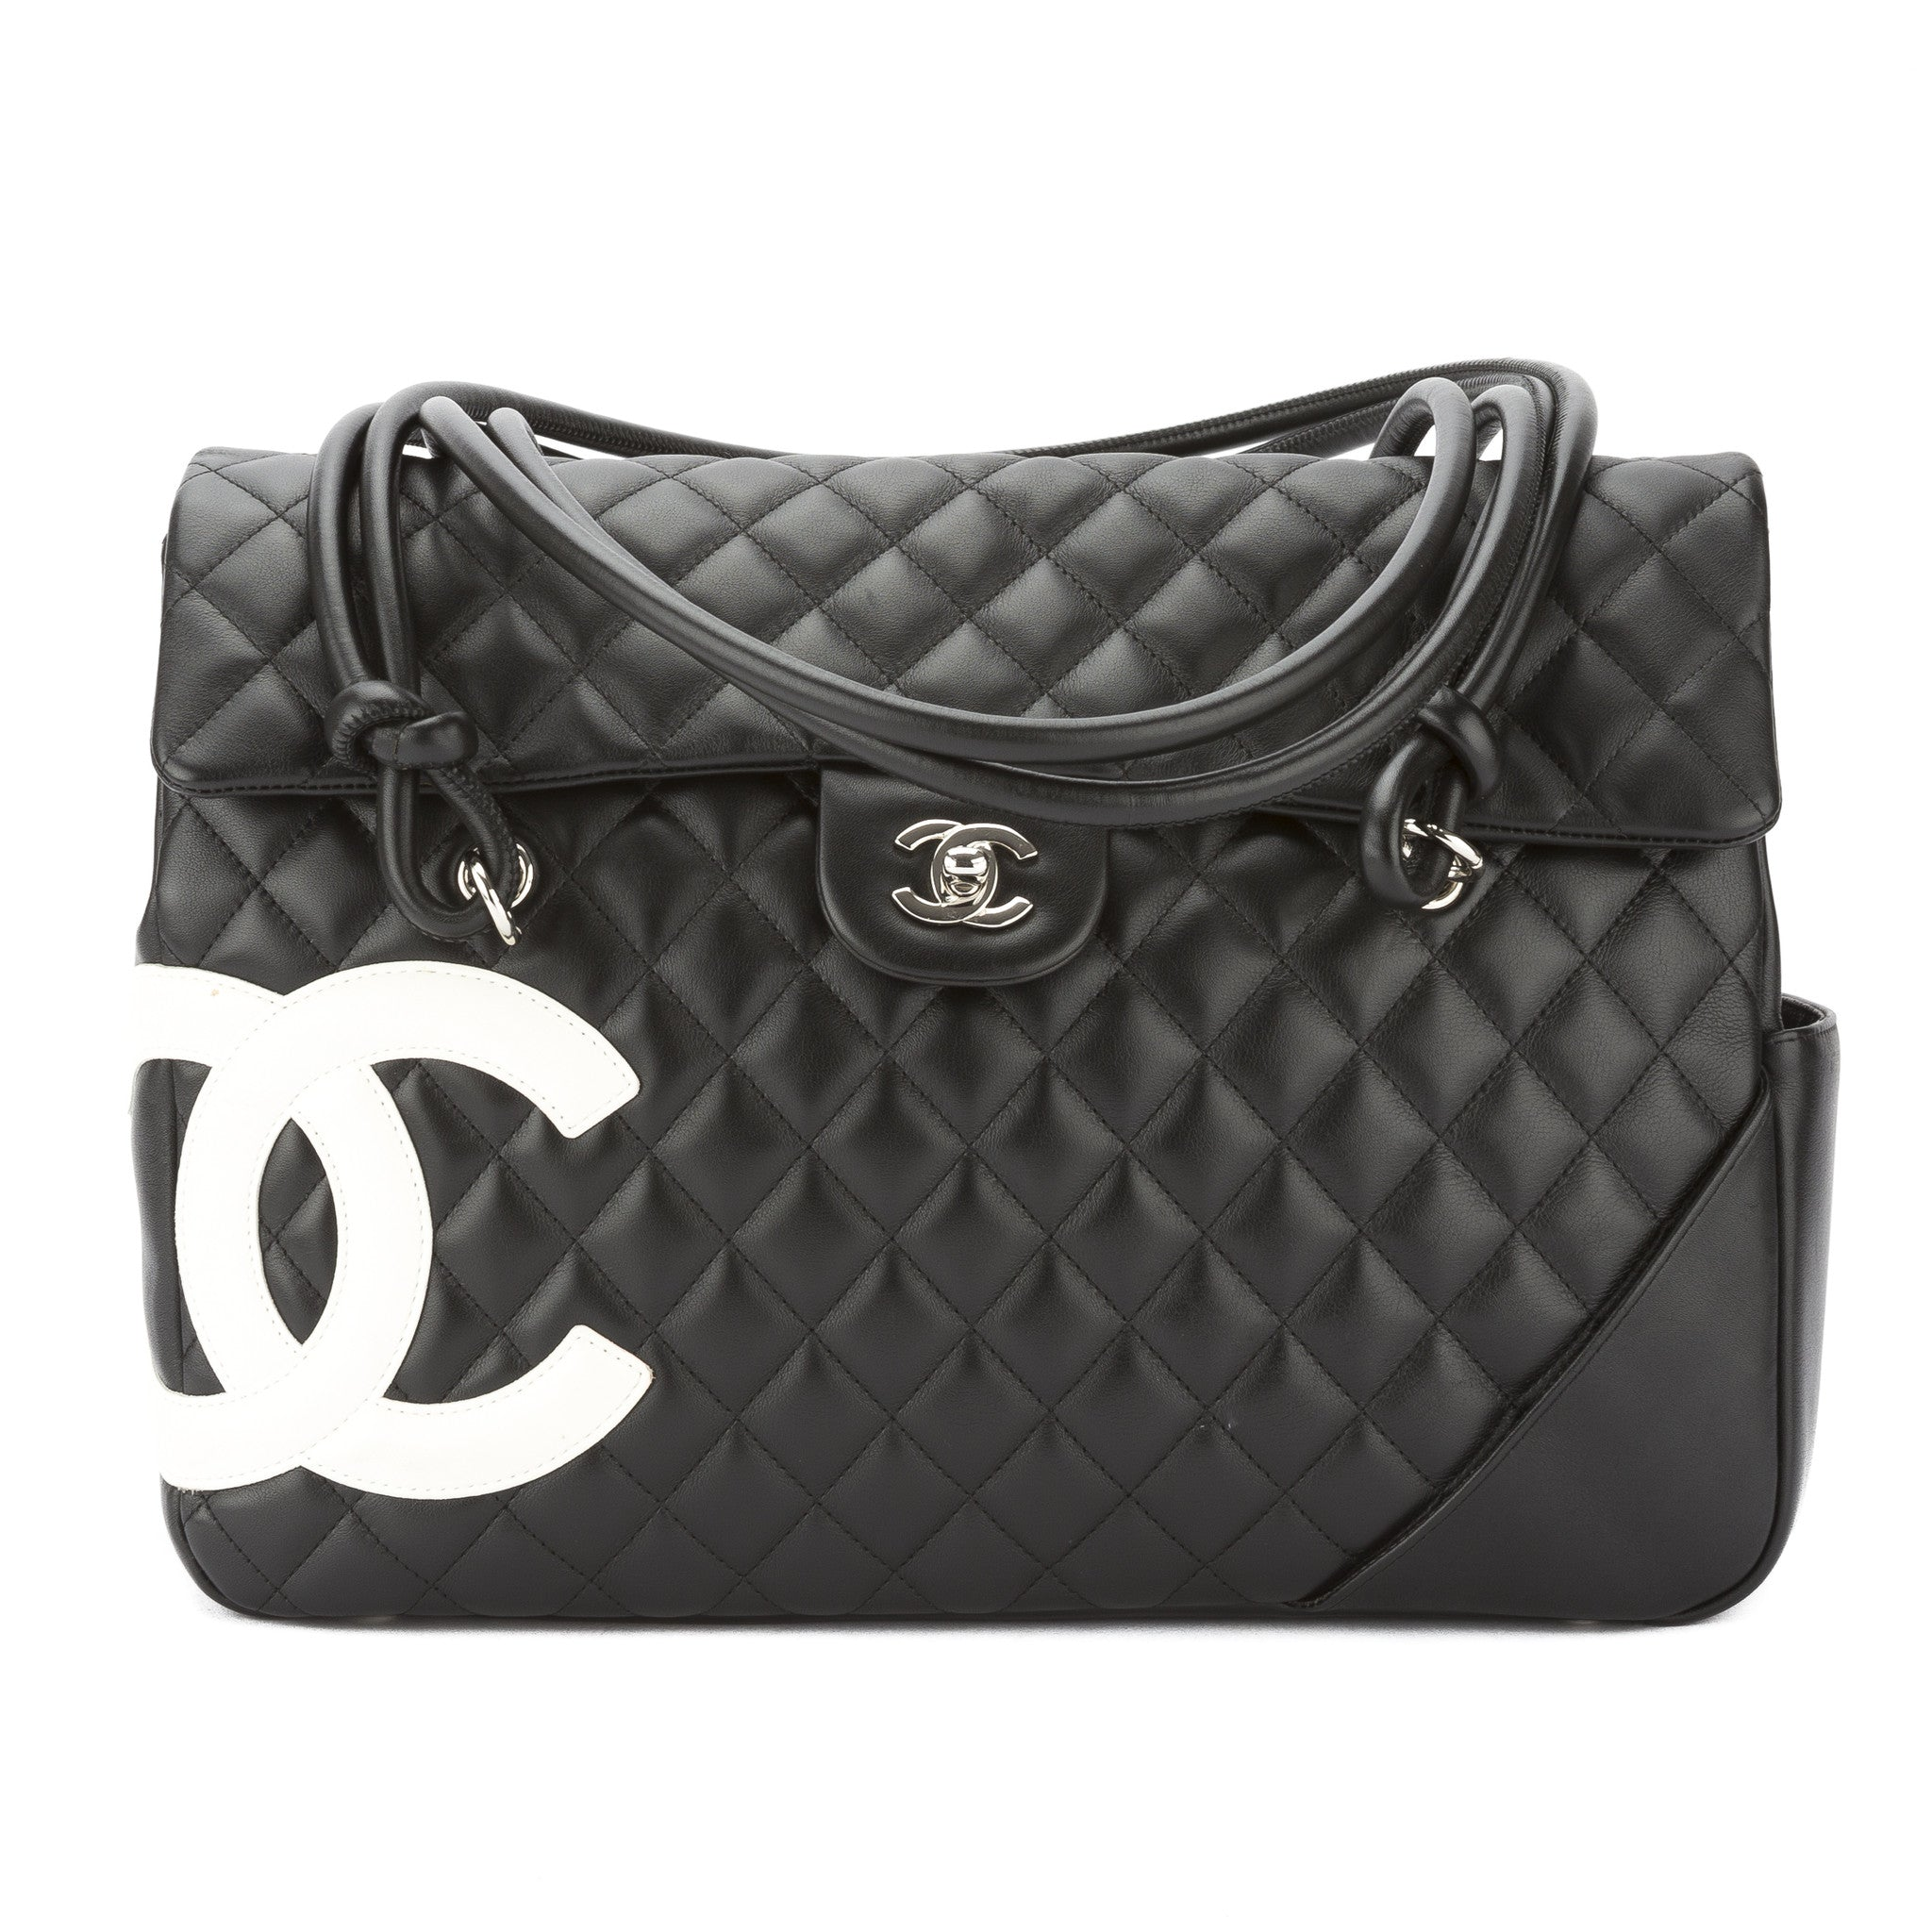 e3ca24e65d04 Chanel Black and White Quilted Leather Ligne Cambon Shoulder Bag Pre Owned